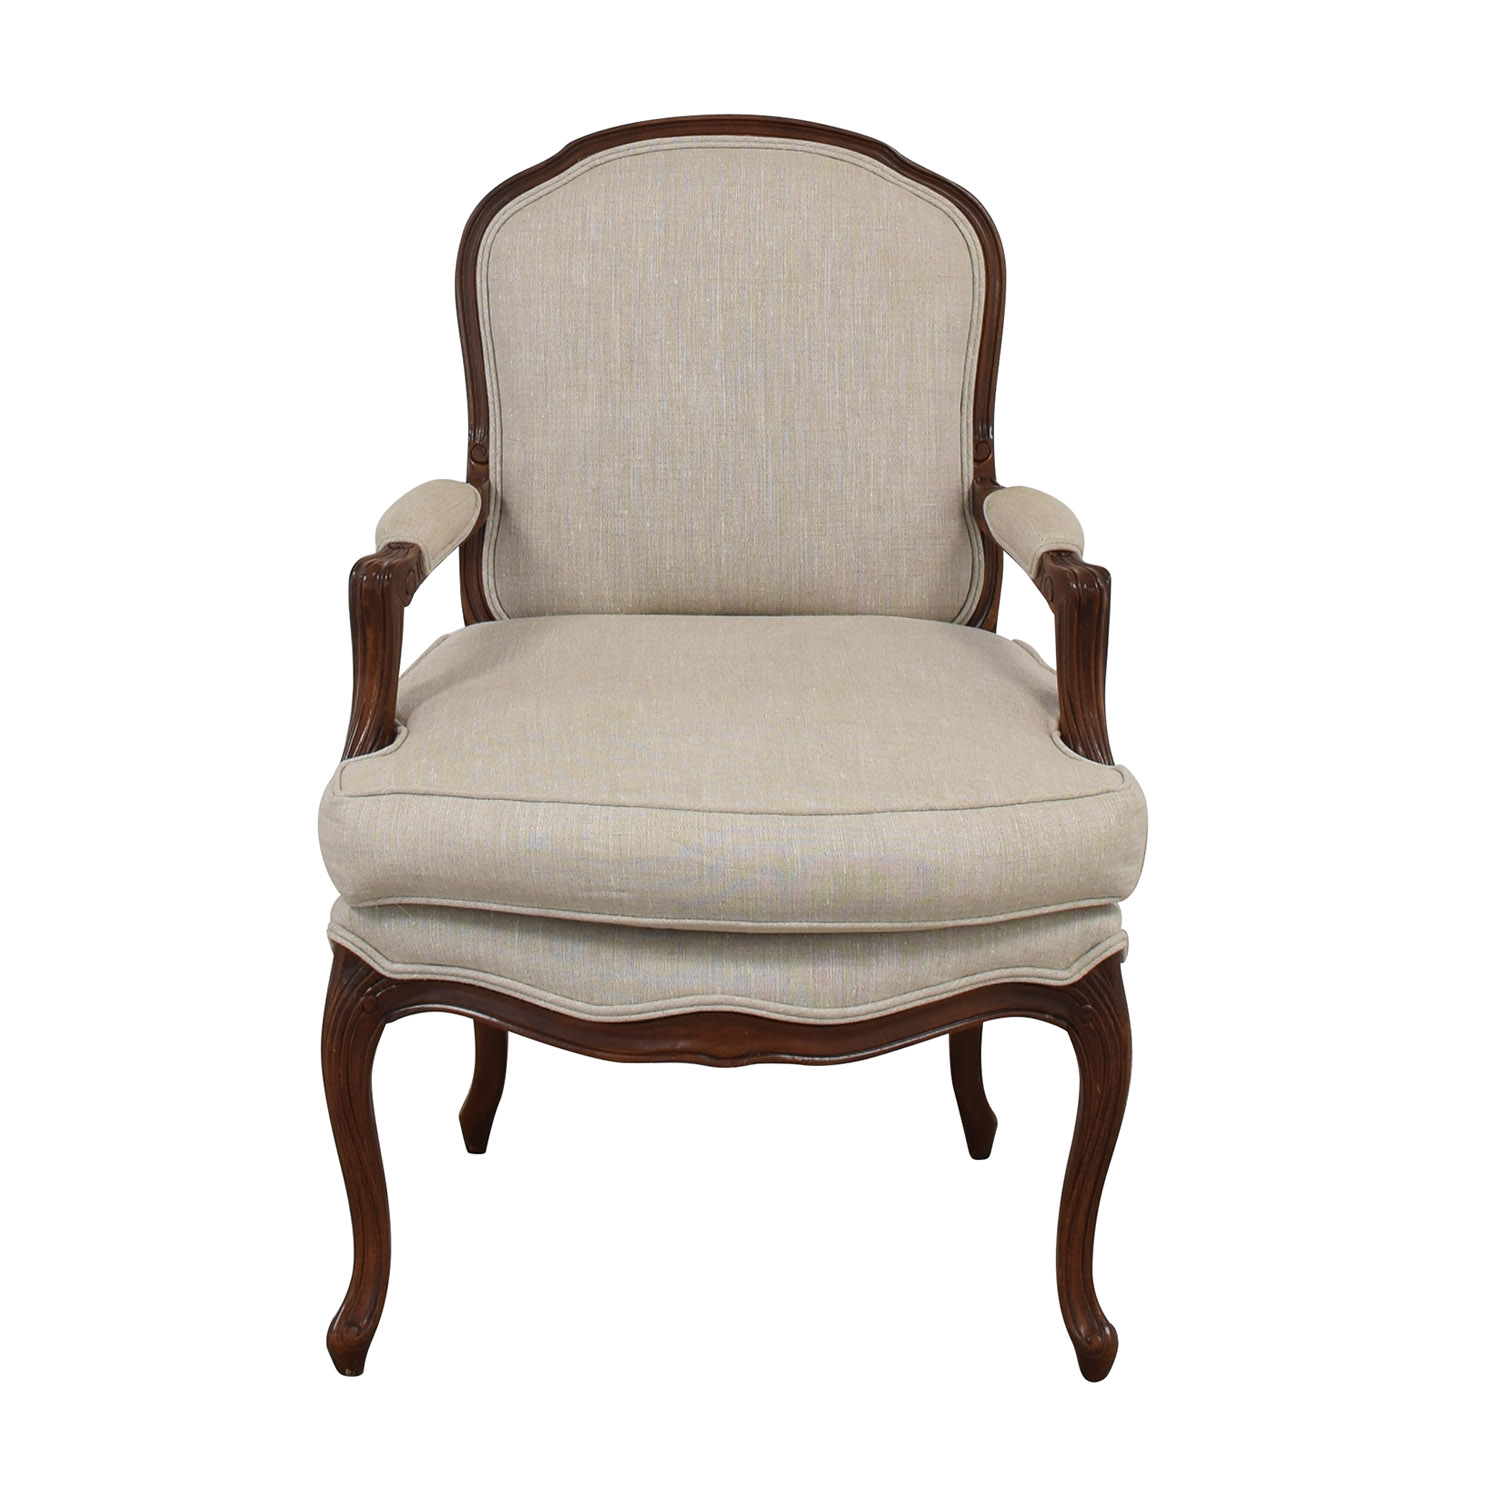 Custom Upholstered French Armchair / Chairs